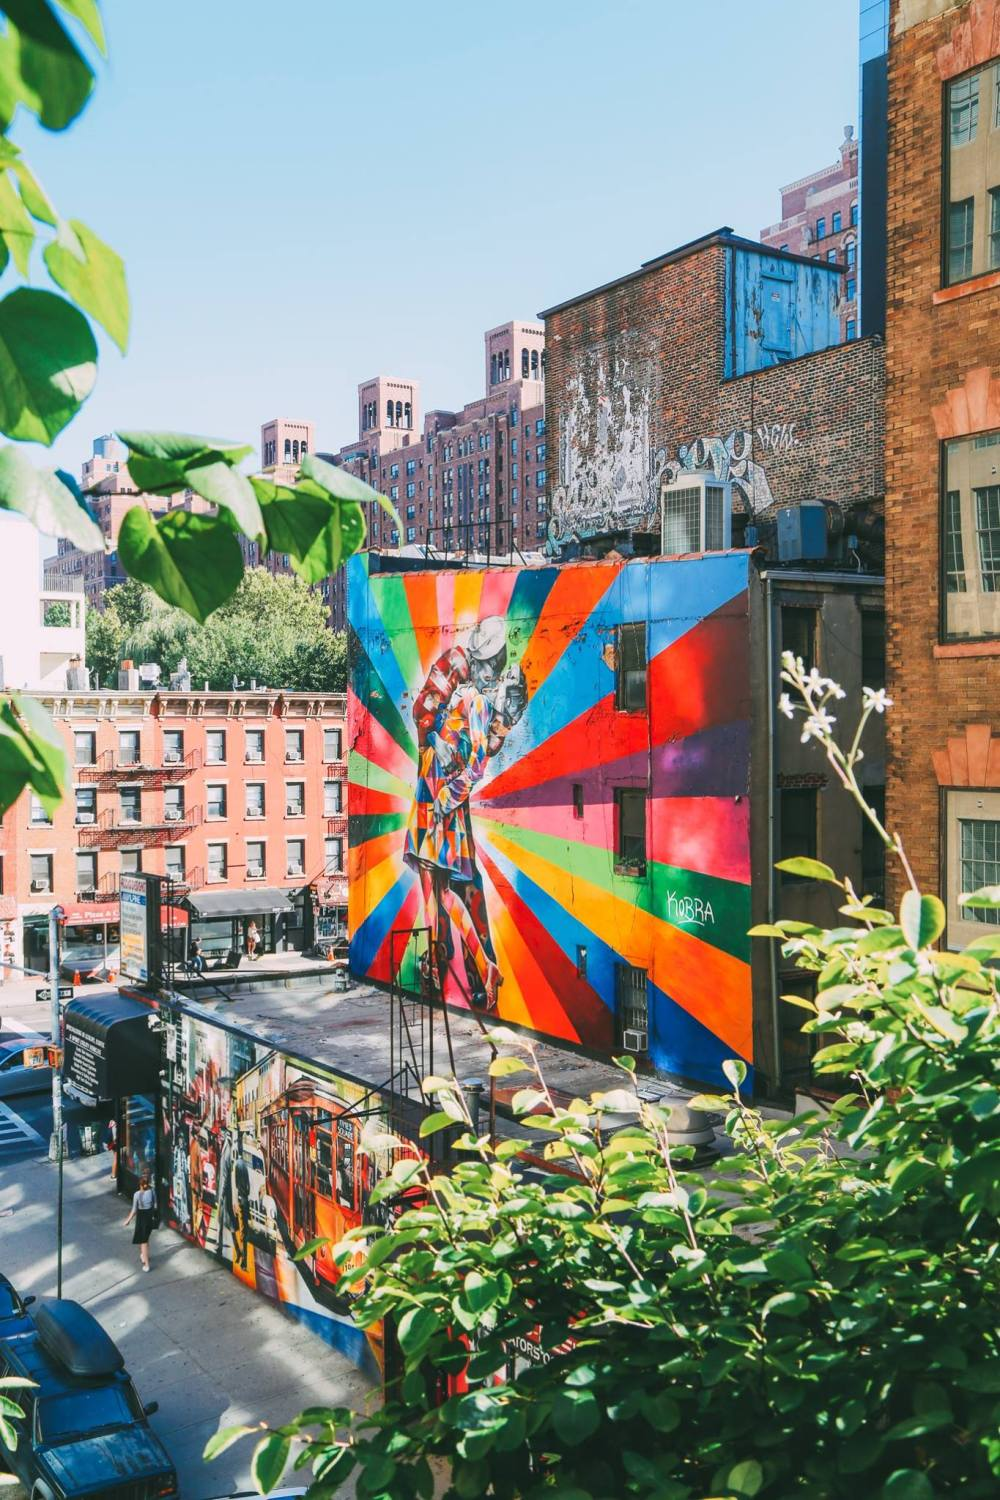 New York Diary: The High Line, Lego House And New York Fashion Week (3)